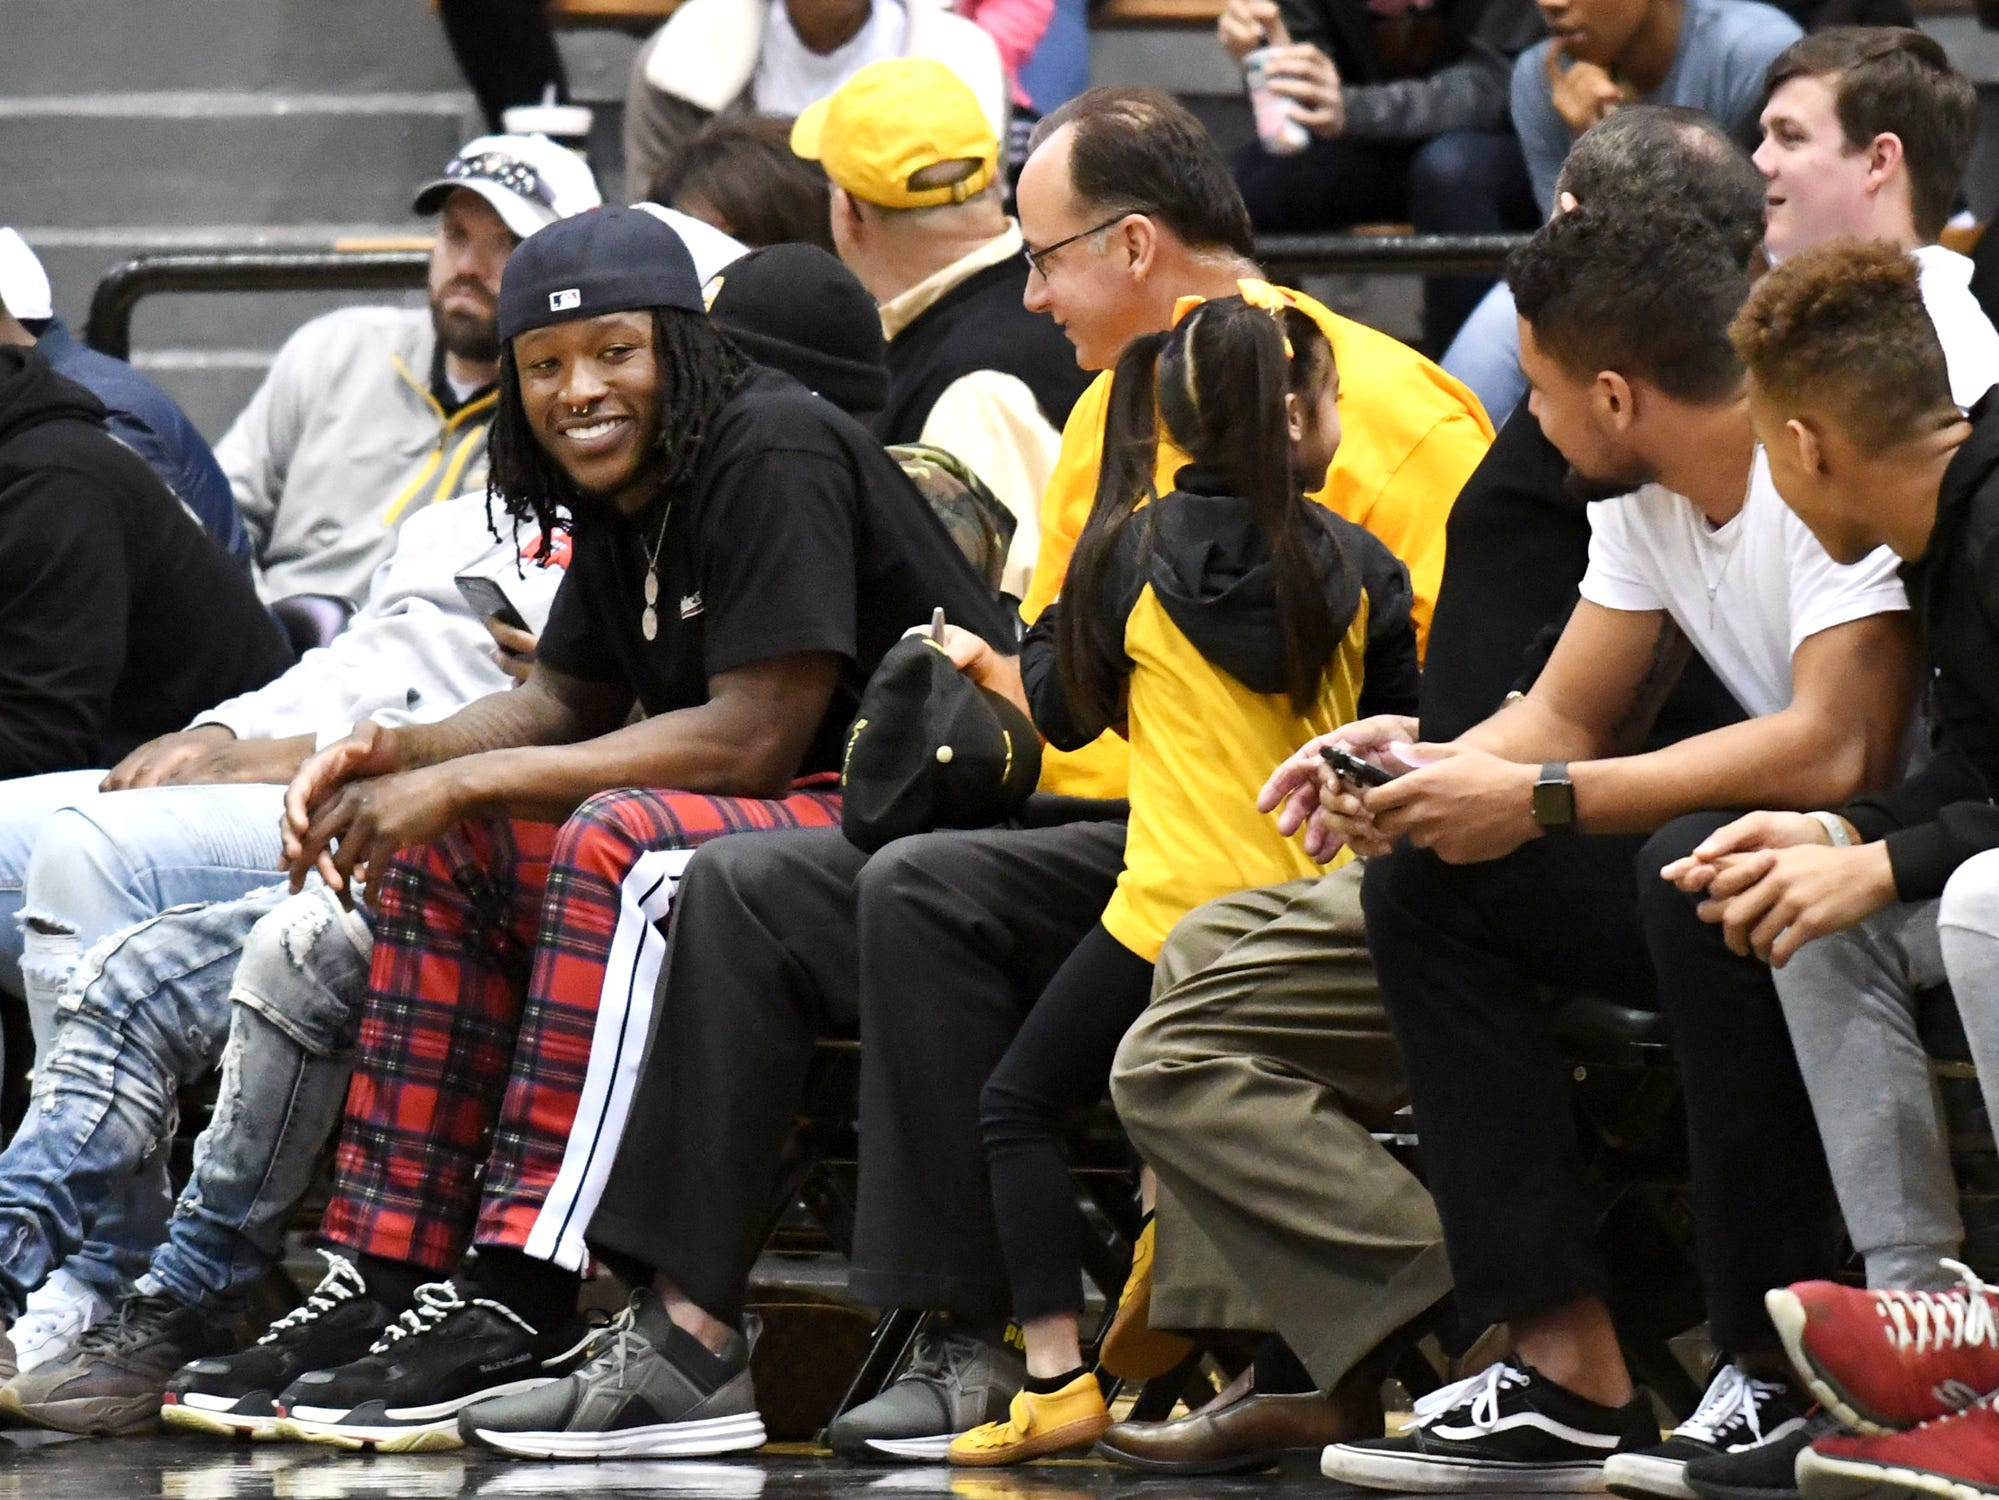 New Orleans Saints running back Alvin Kamara watches the Southern Miss men's basketball in a game against Louisiana Tech in Reed Green Coliseum on Saturday, February 9, 2019.